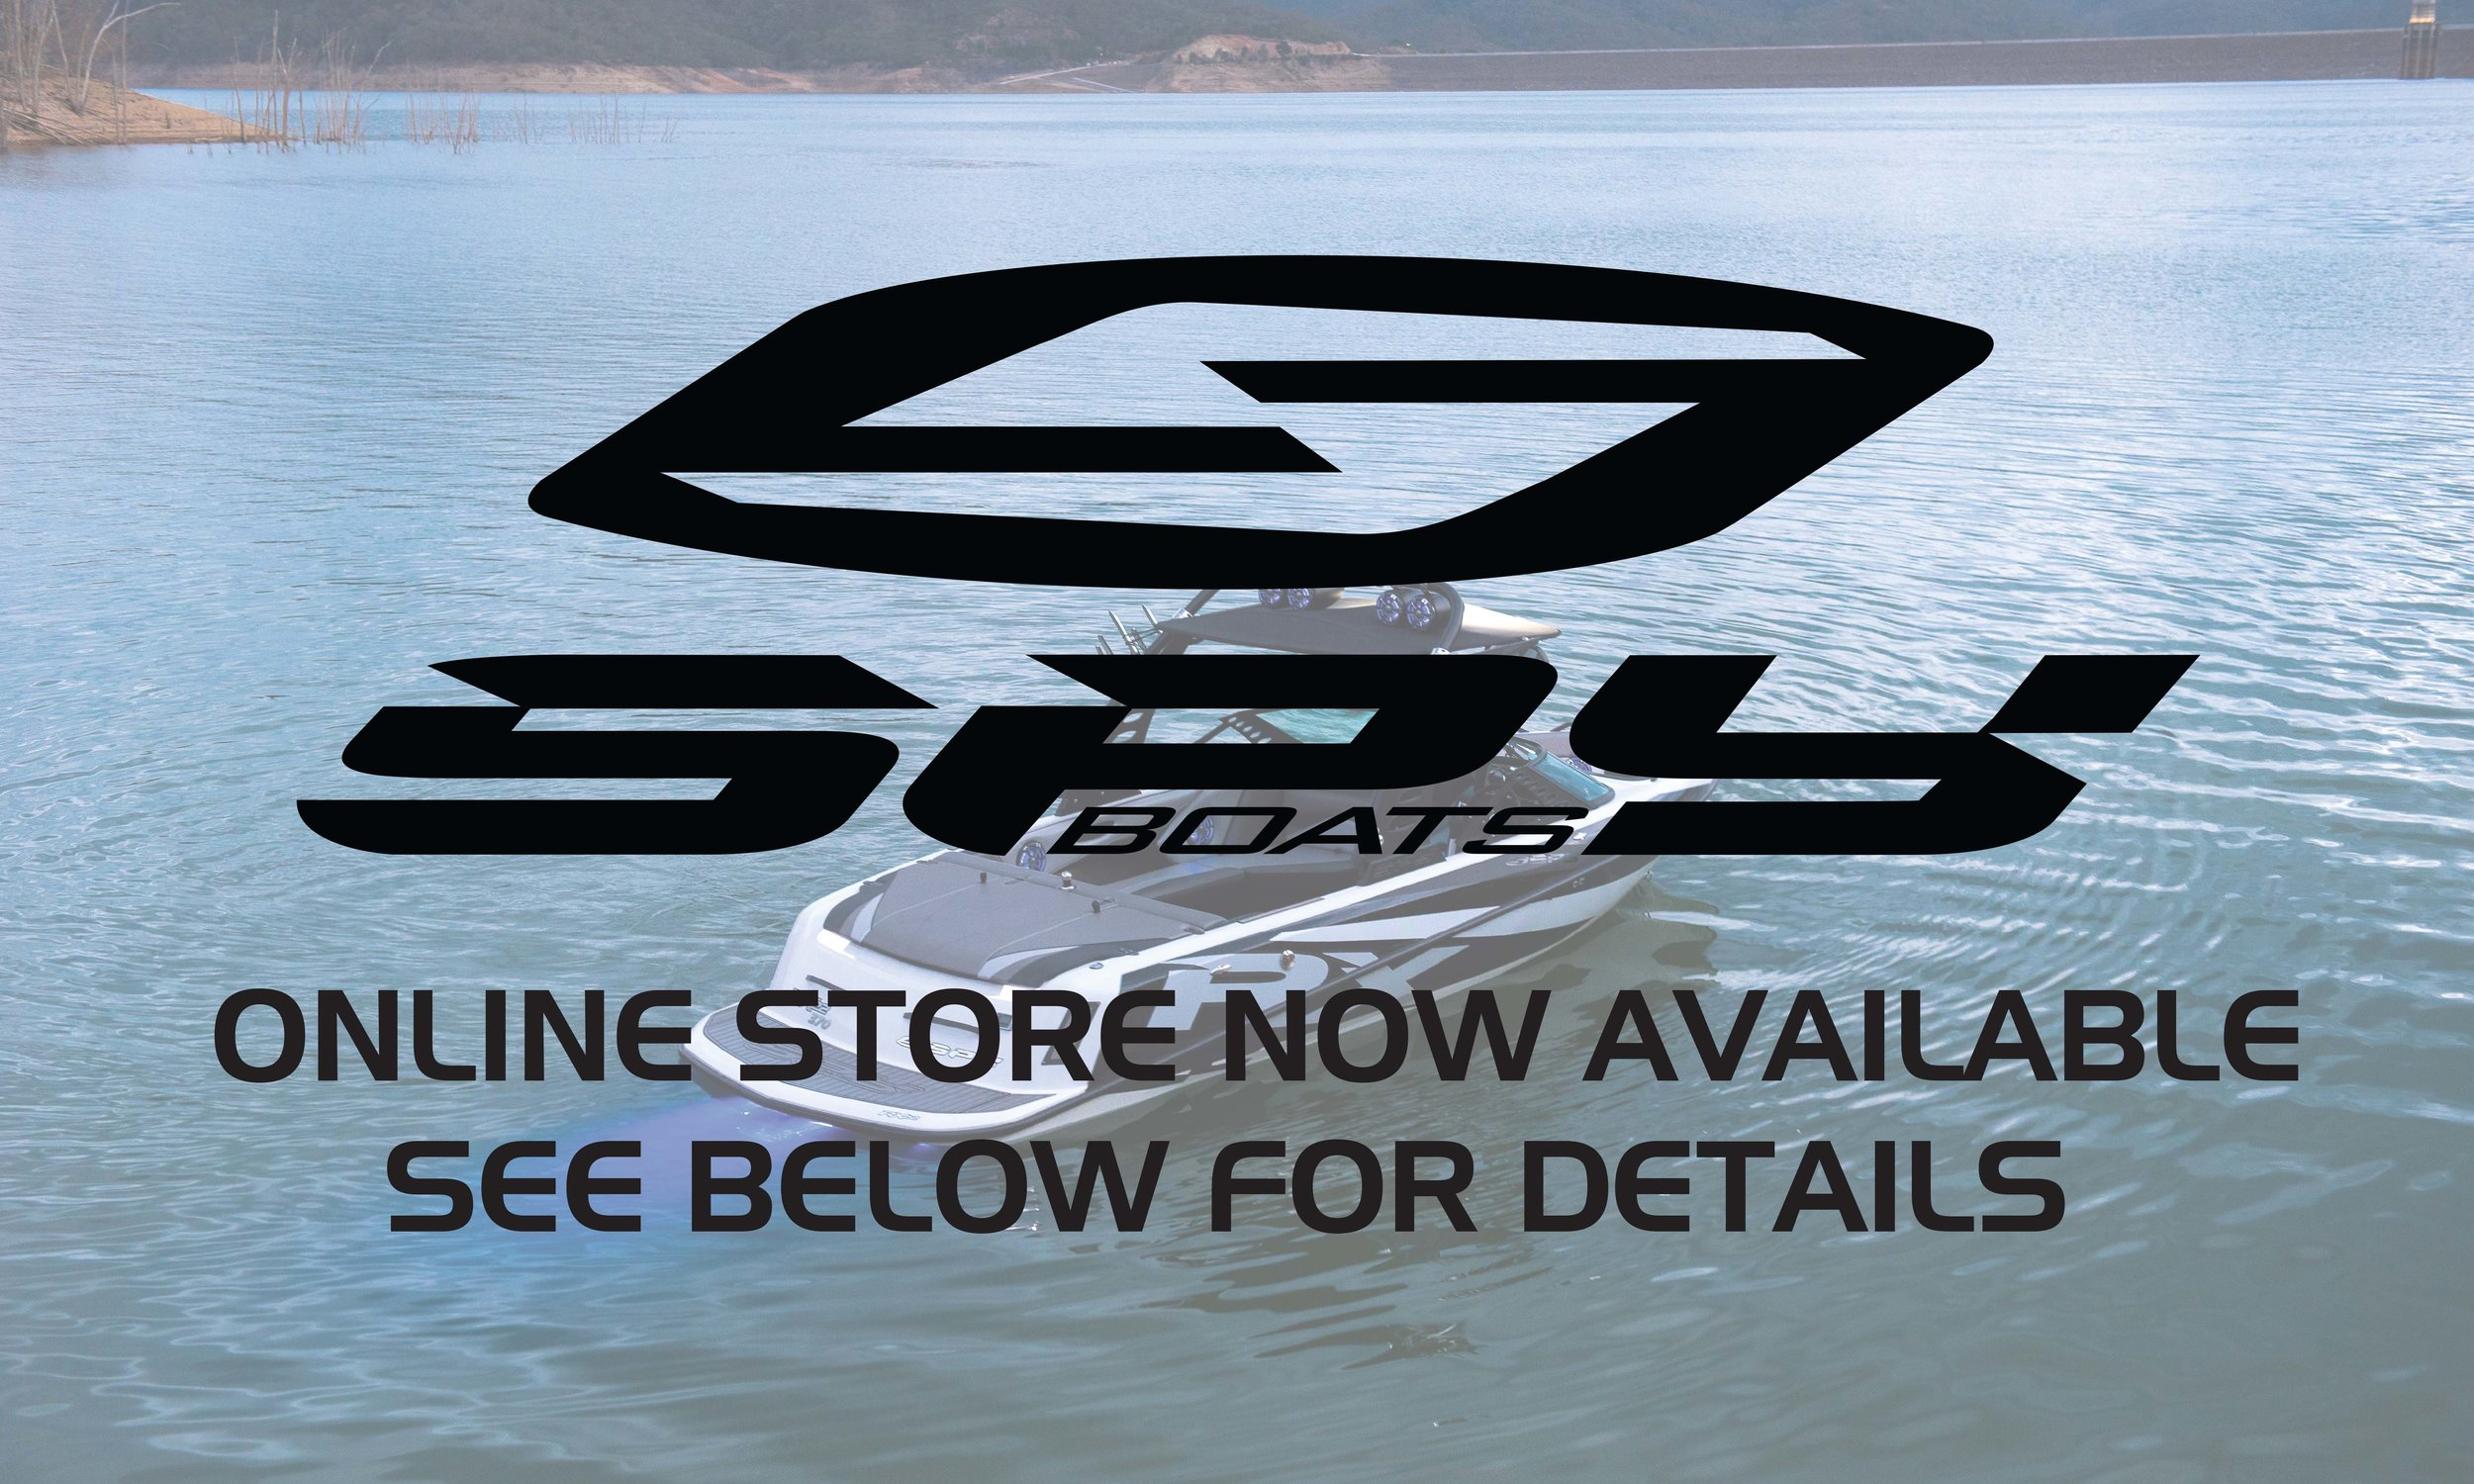 Visit our facebook page and follow the link to our online store.